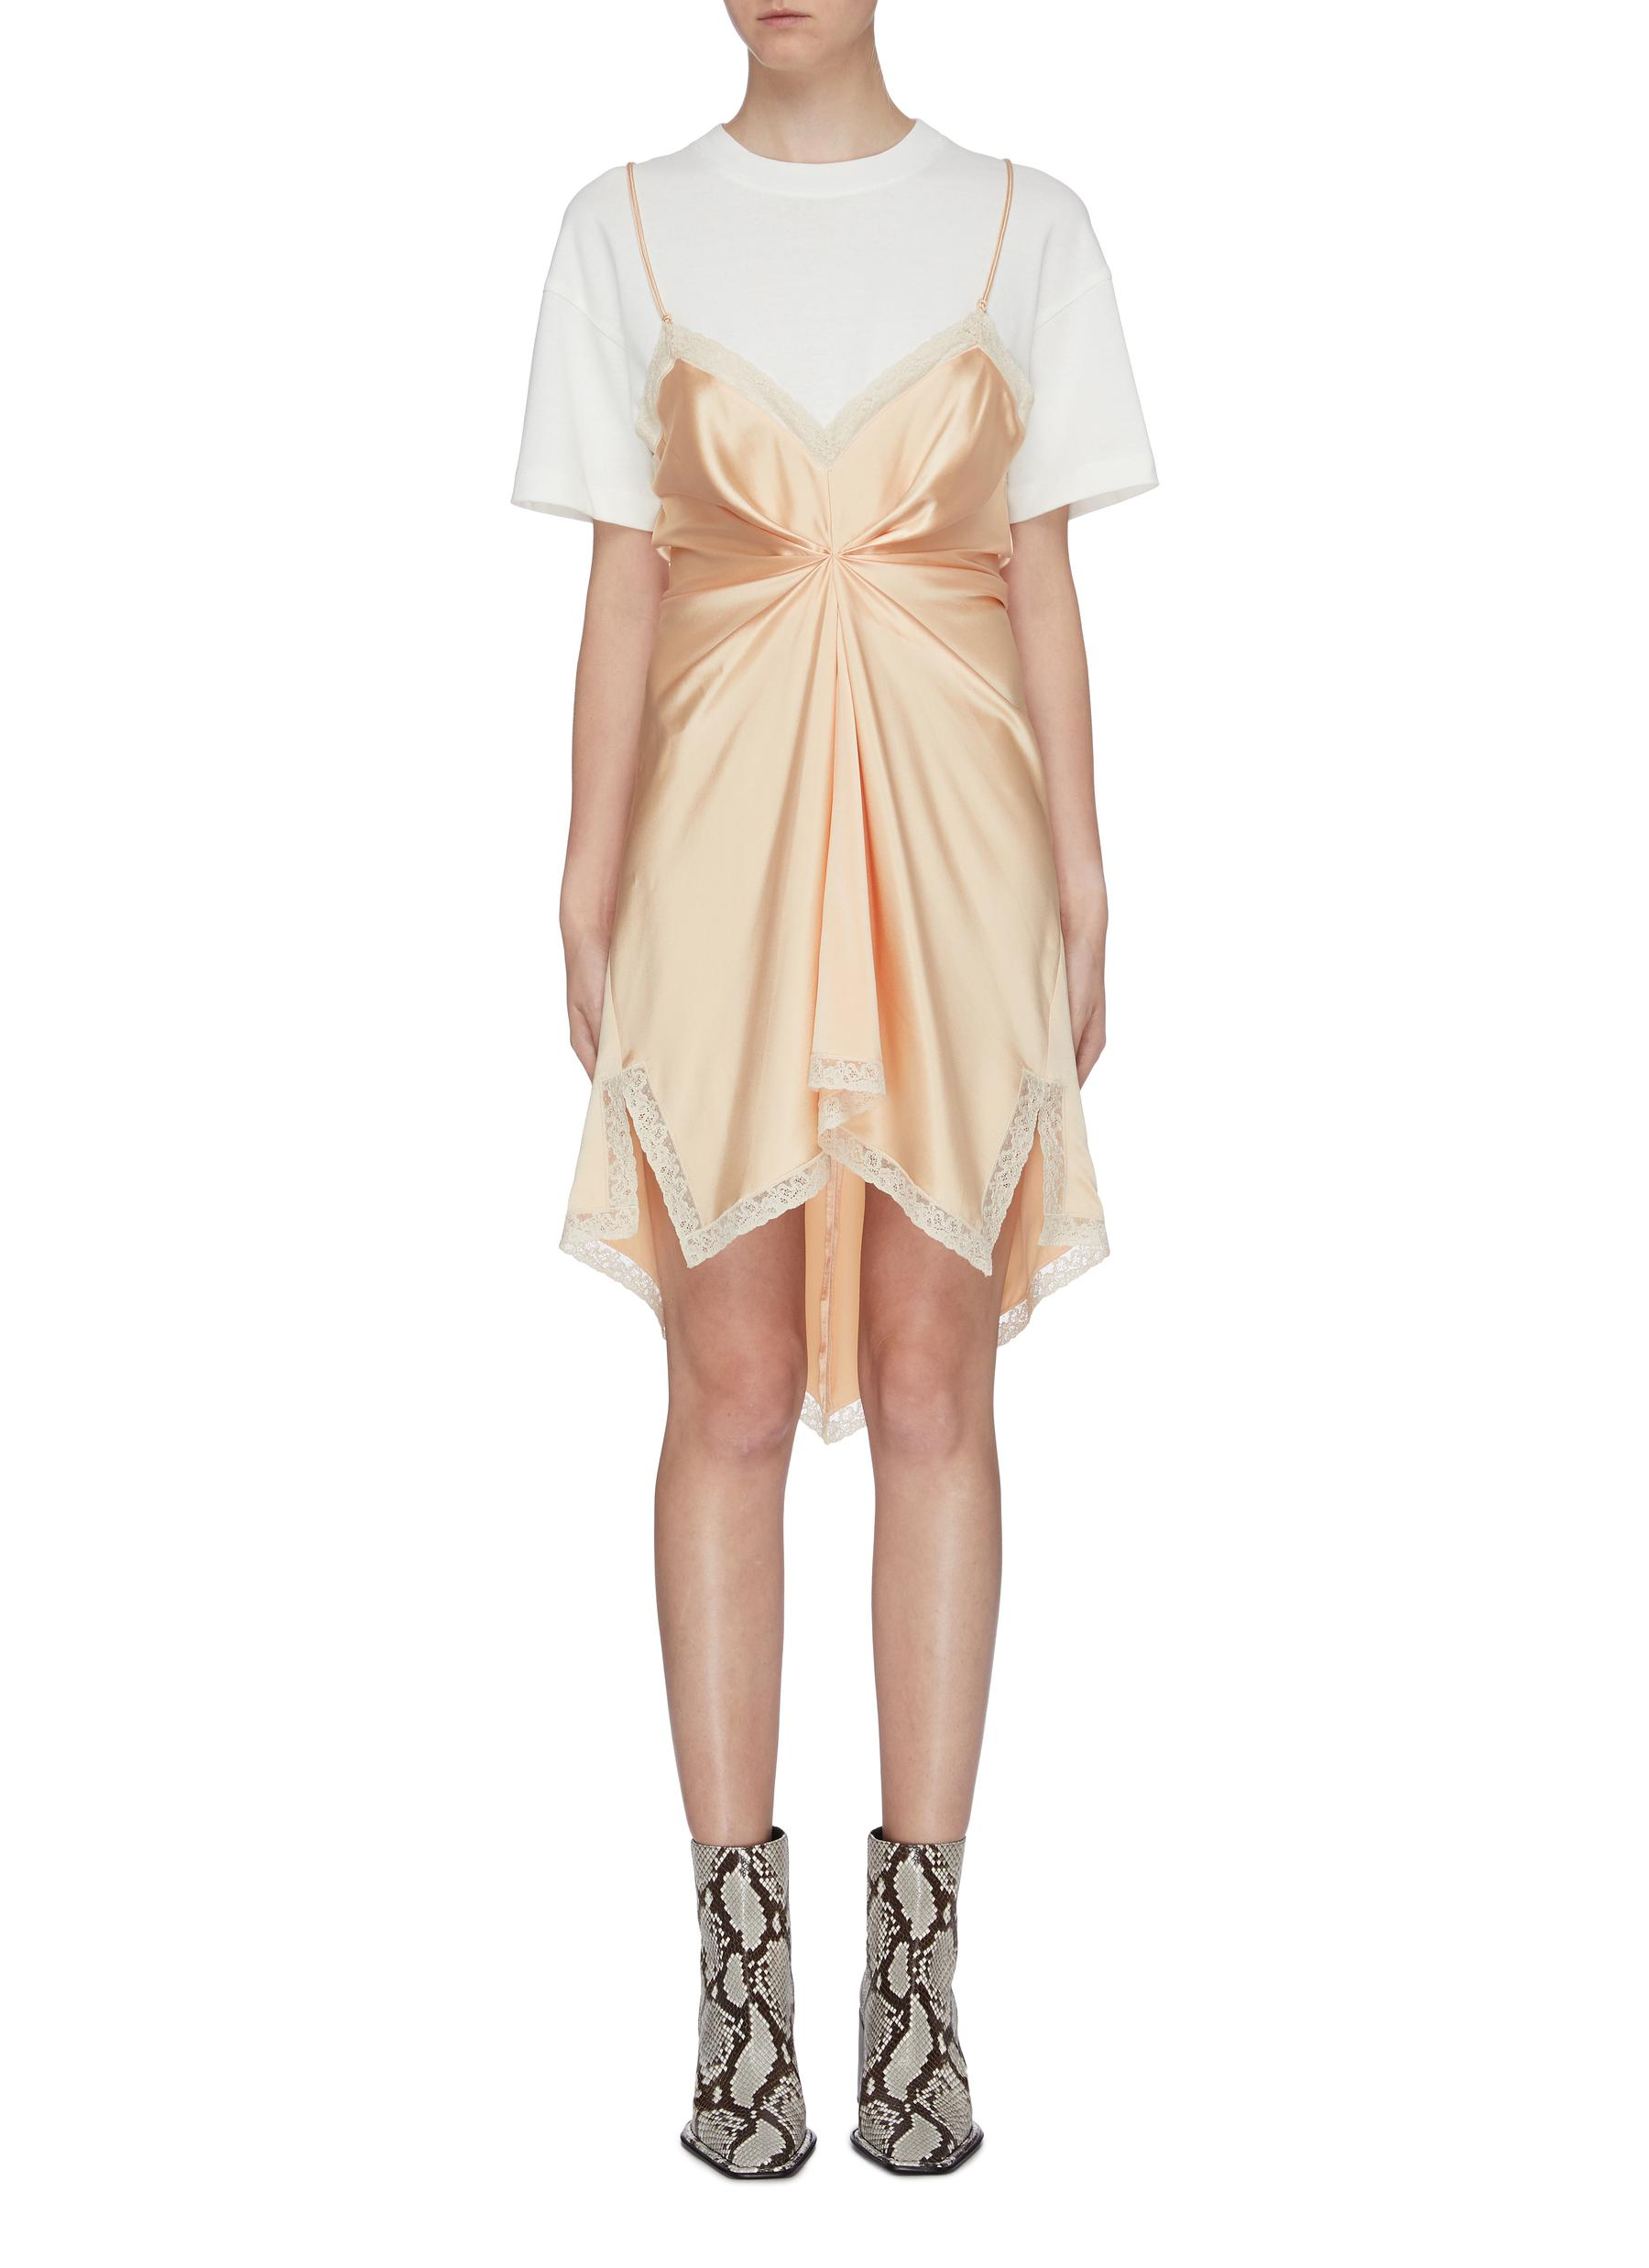 Lace edge twist front T-shirt satin slip dress by Alexanderwang